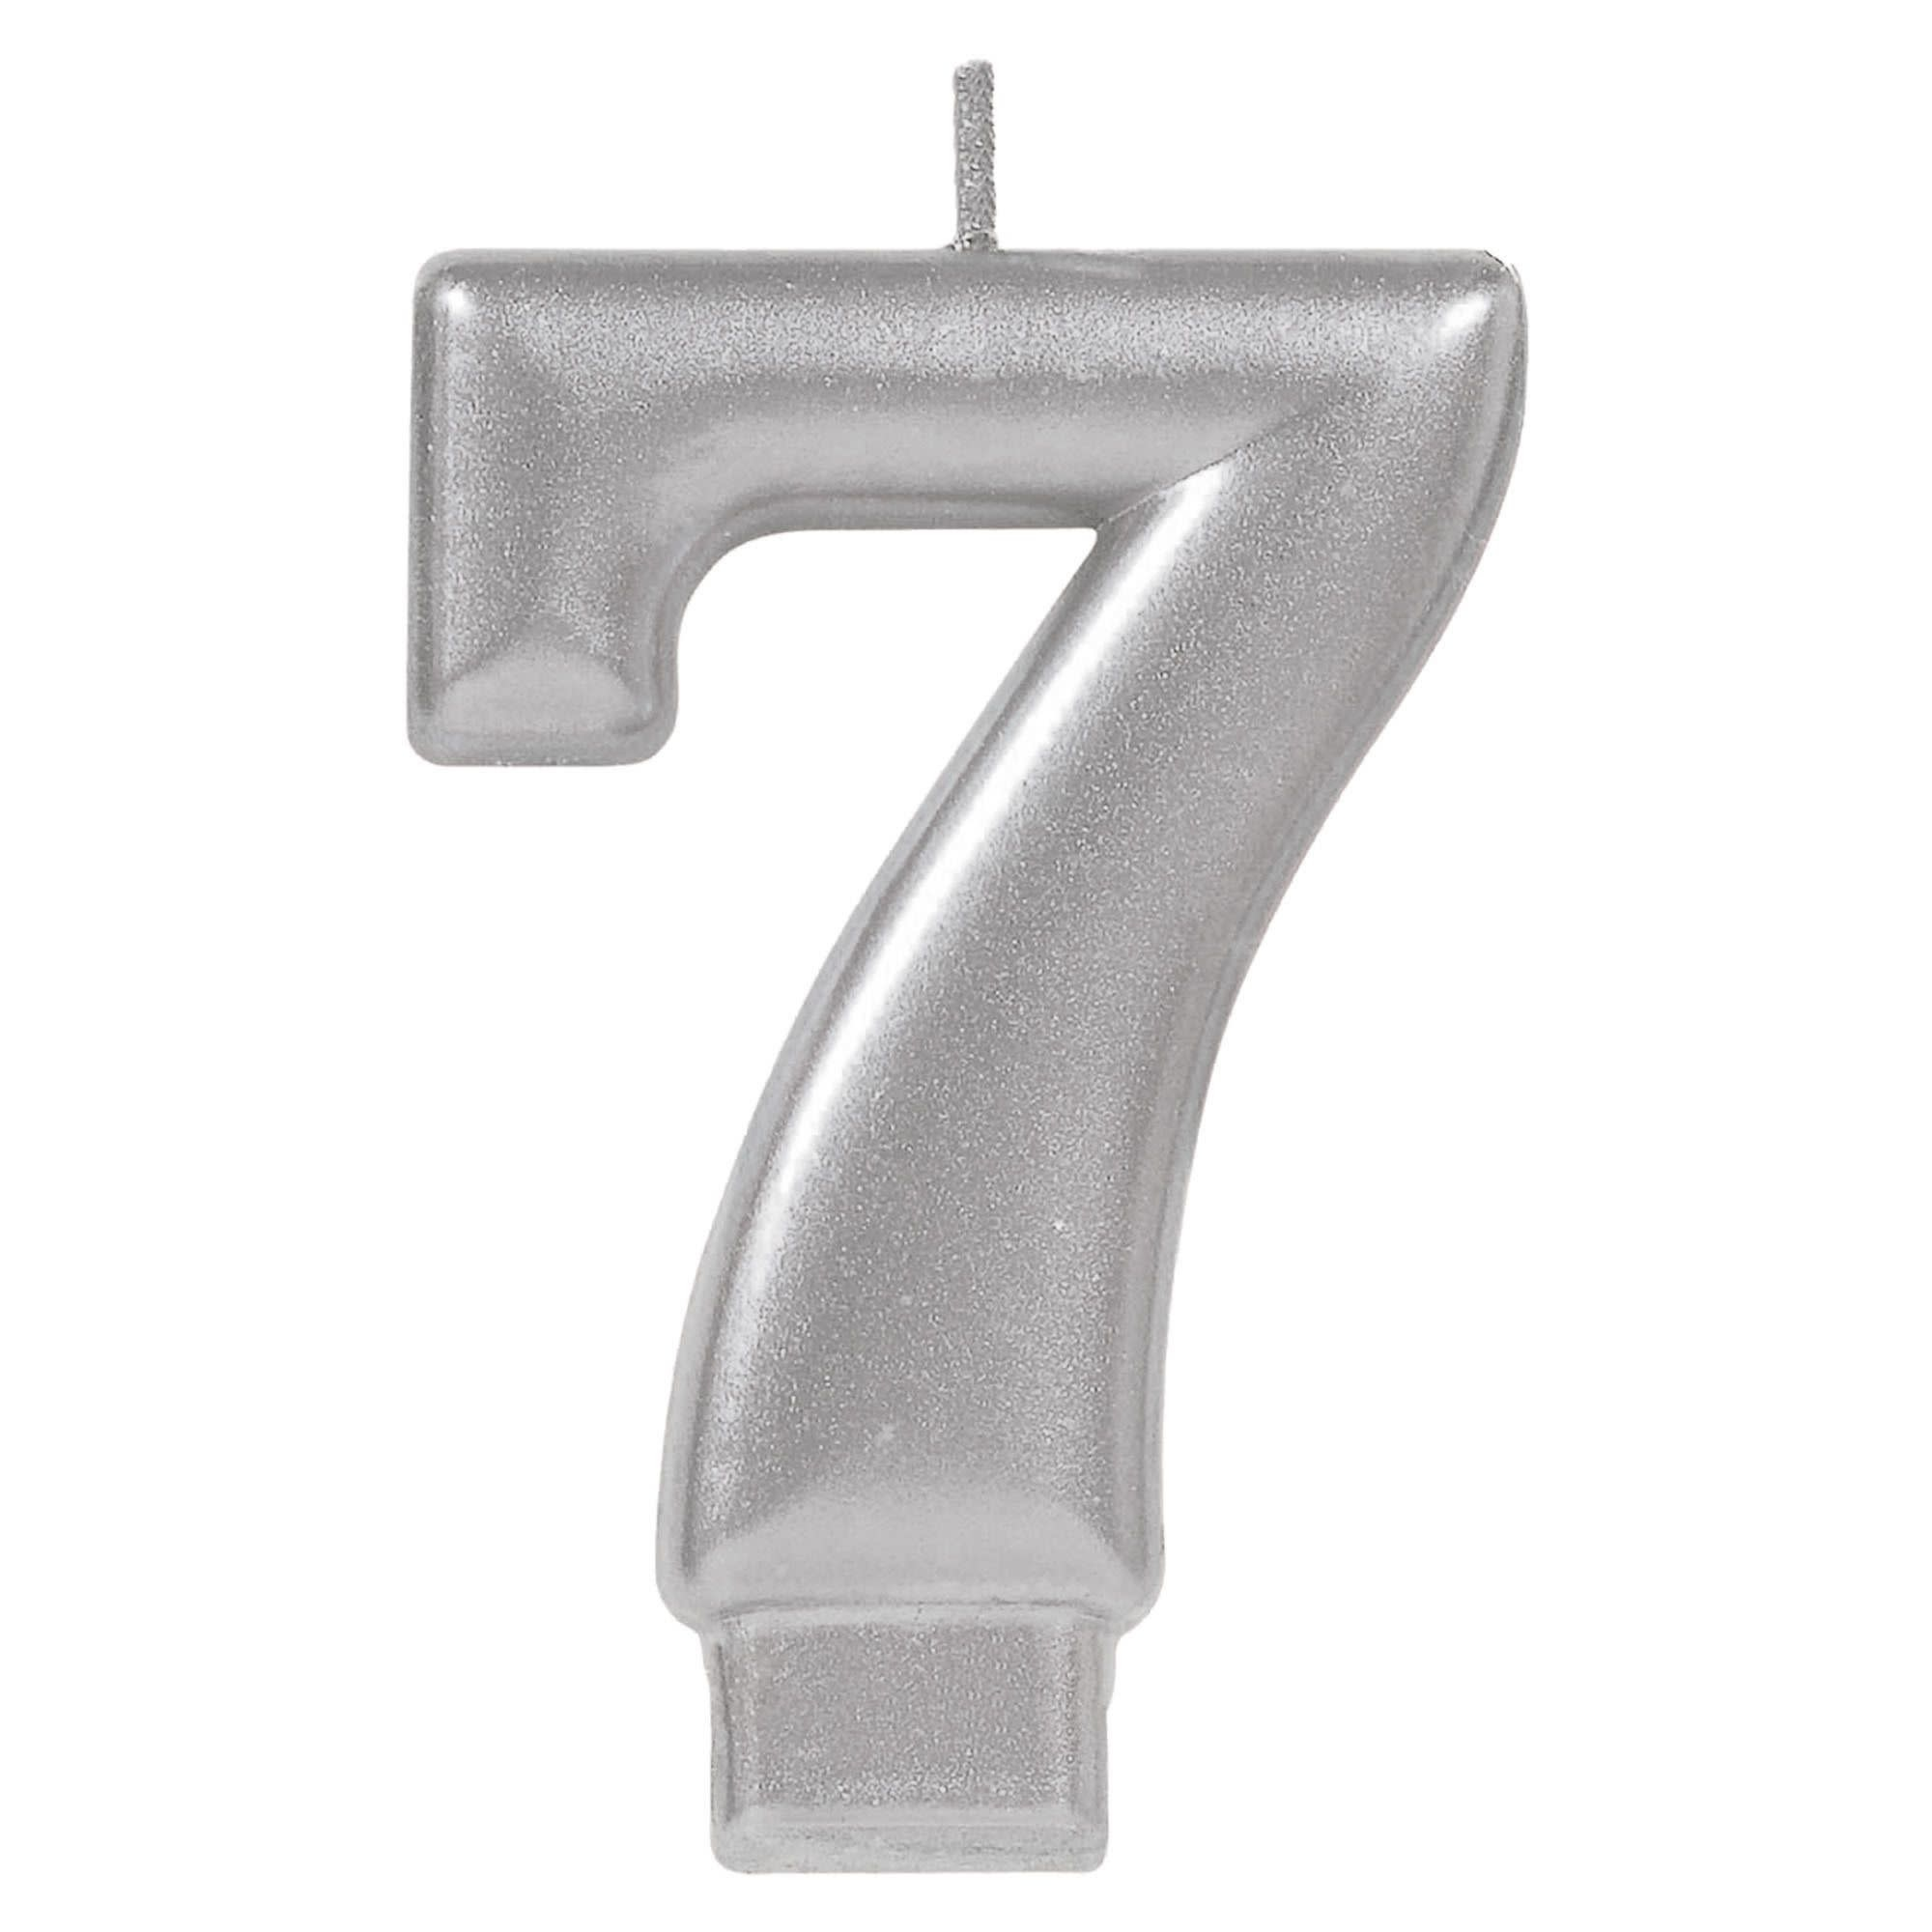 Numeral Metallic Candle #7 - Silver